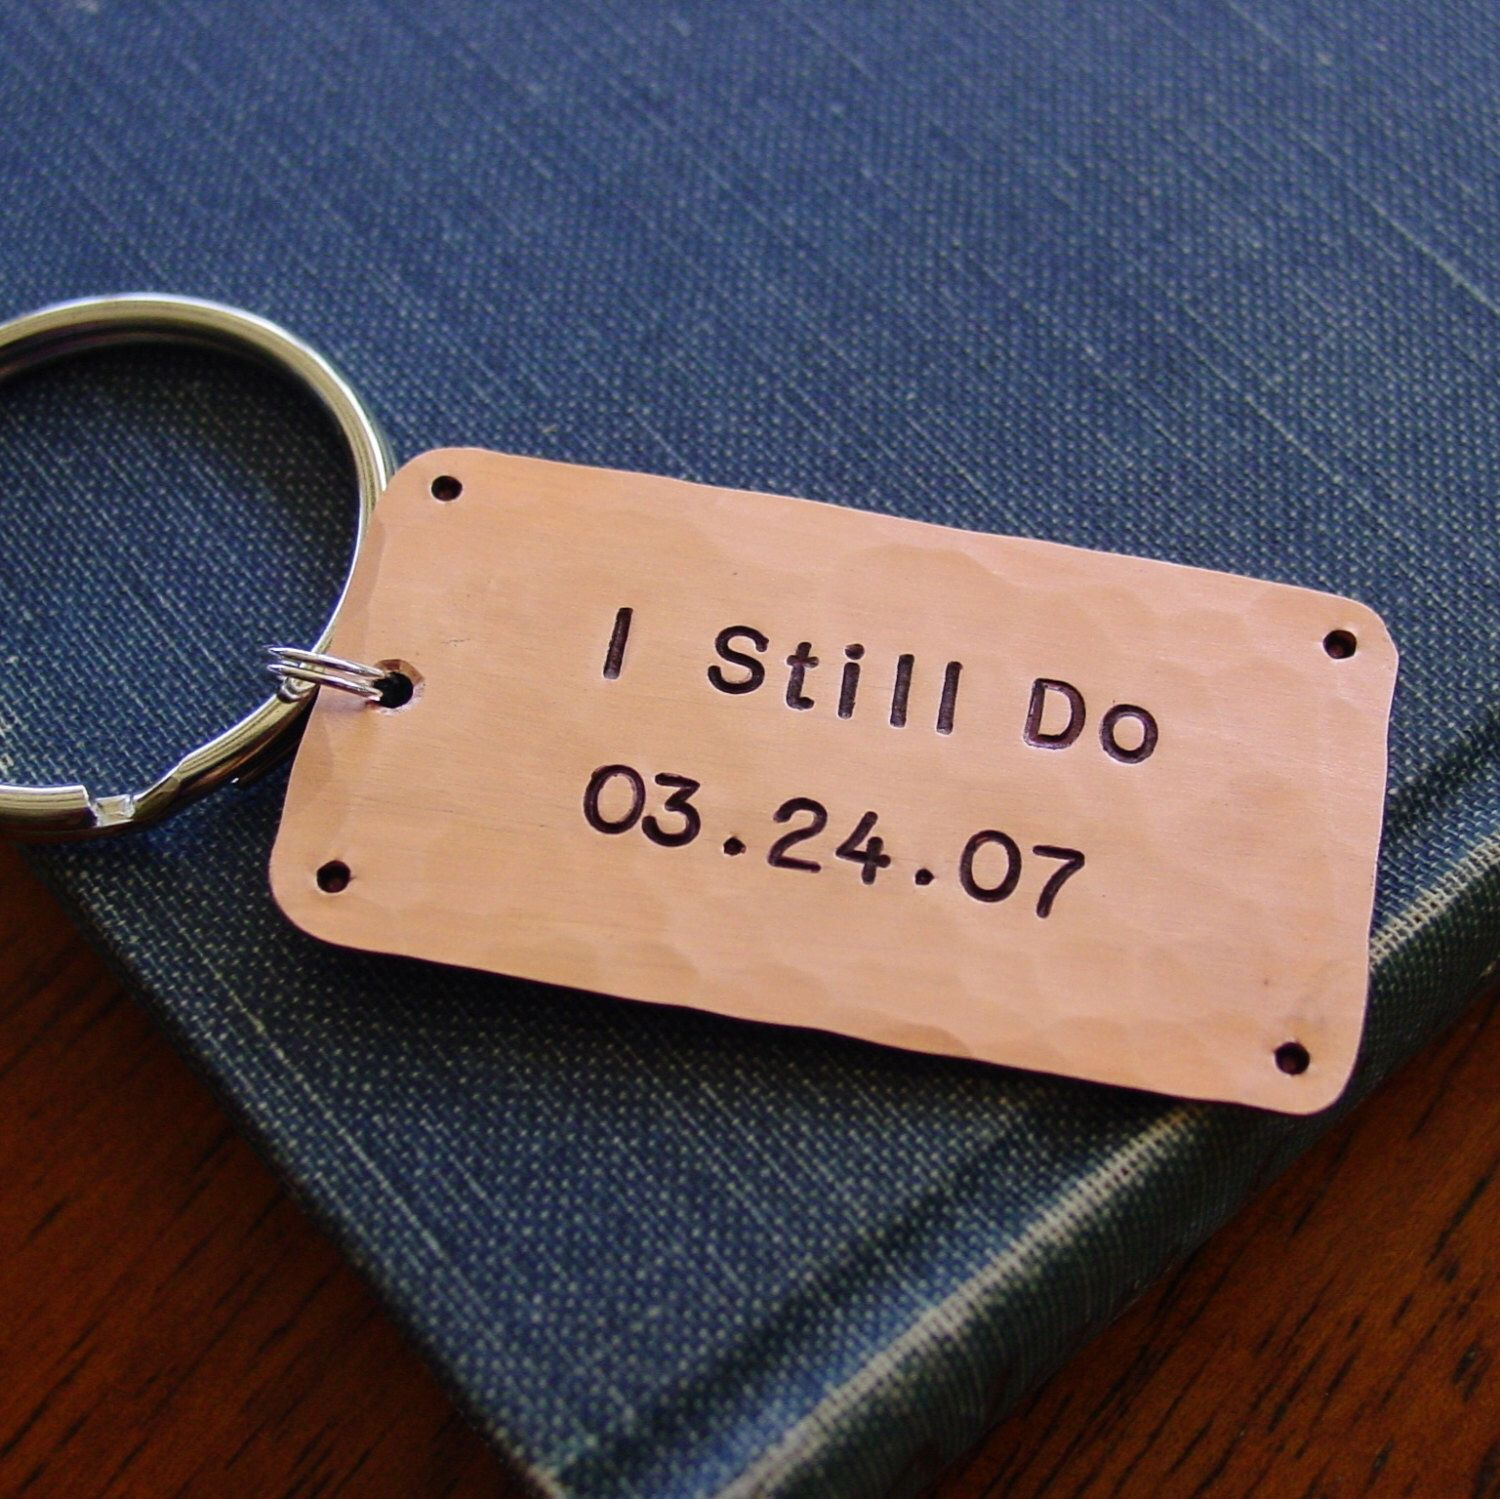 Gifts For Wedding Anniversaries For Each Year: I Still Do Keychain, 7th Anniversary Copper Gift